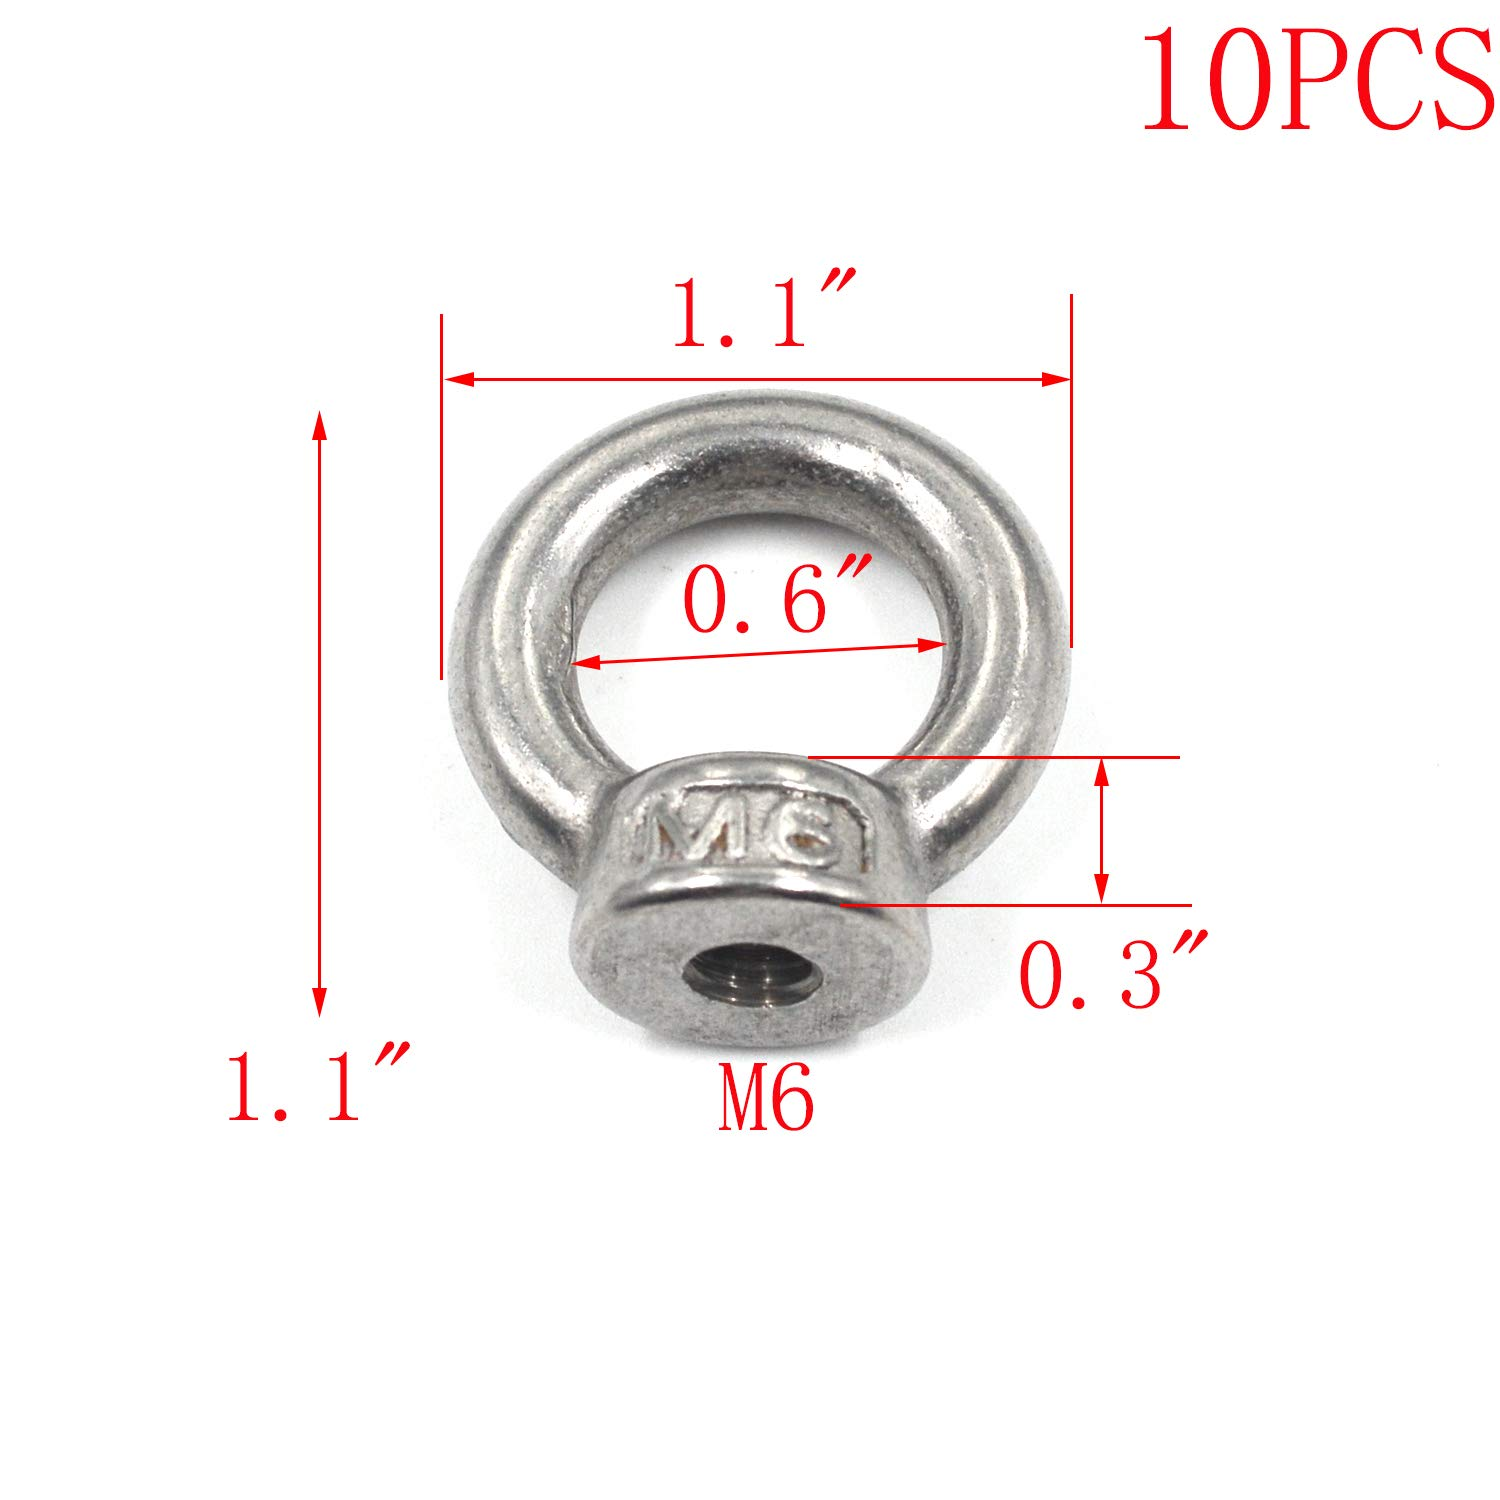 MTMTOOL Silver Tone 304 Stainless Steel Lifting Eye Nuts M4 Female Eye Bolts Pack of 10